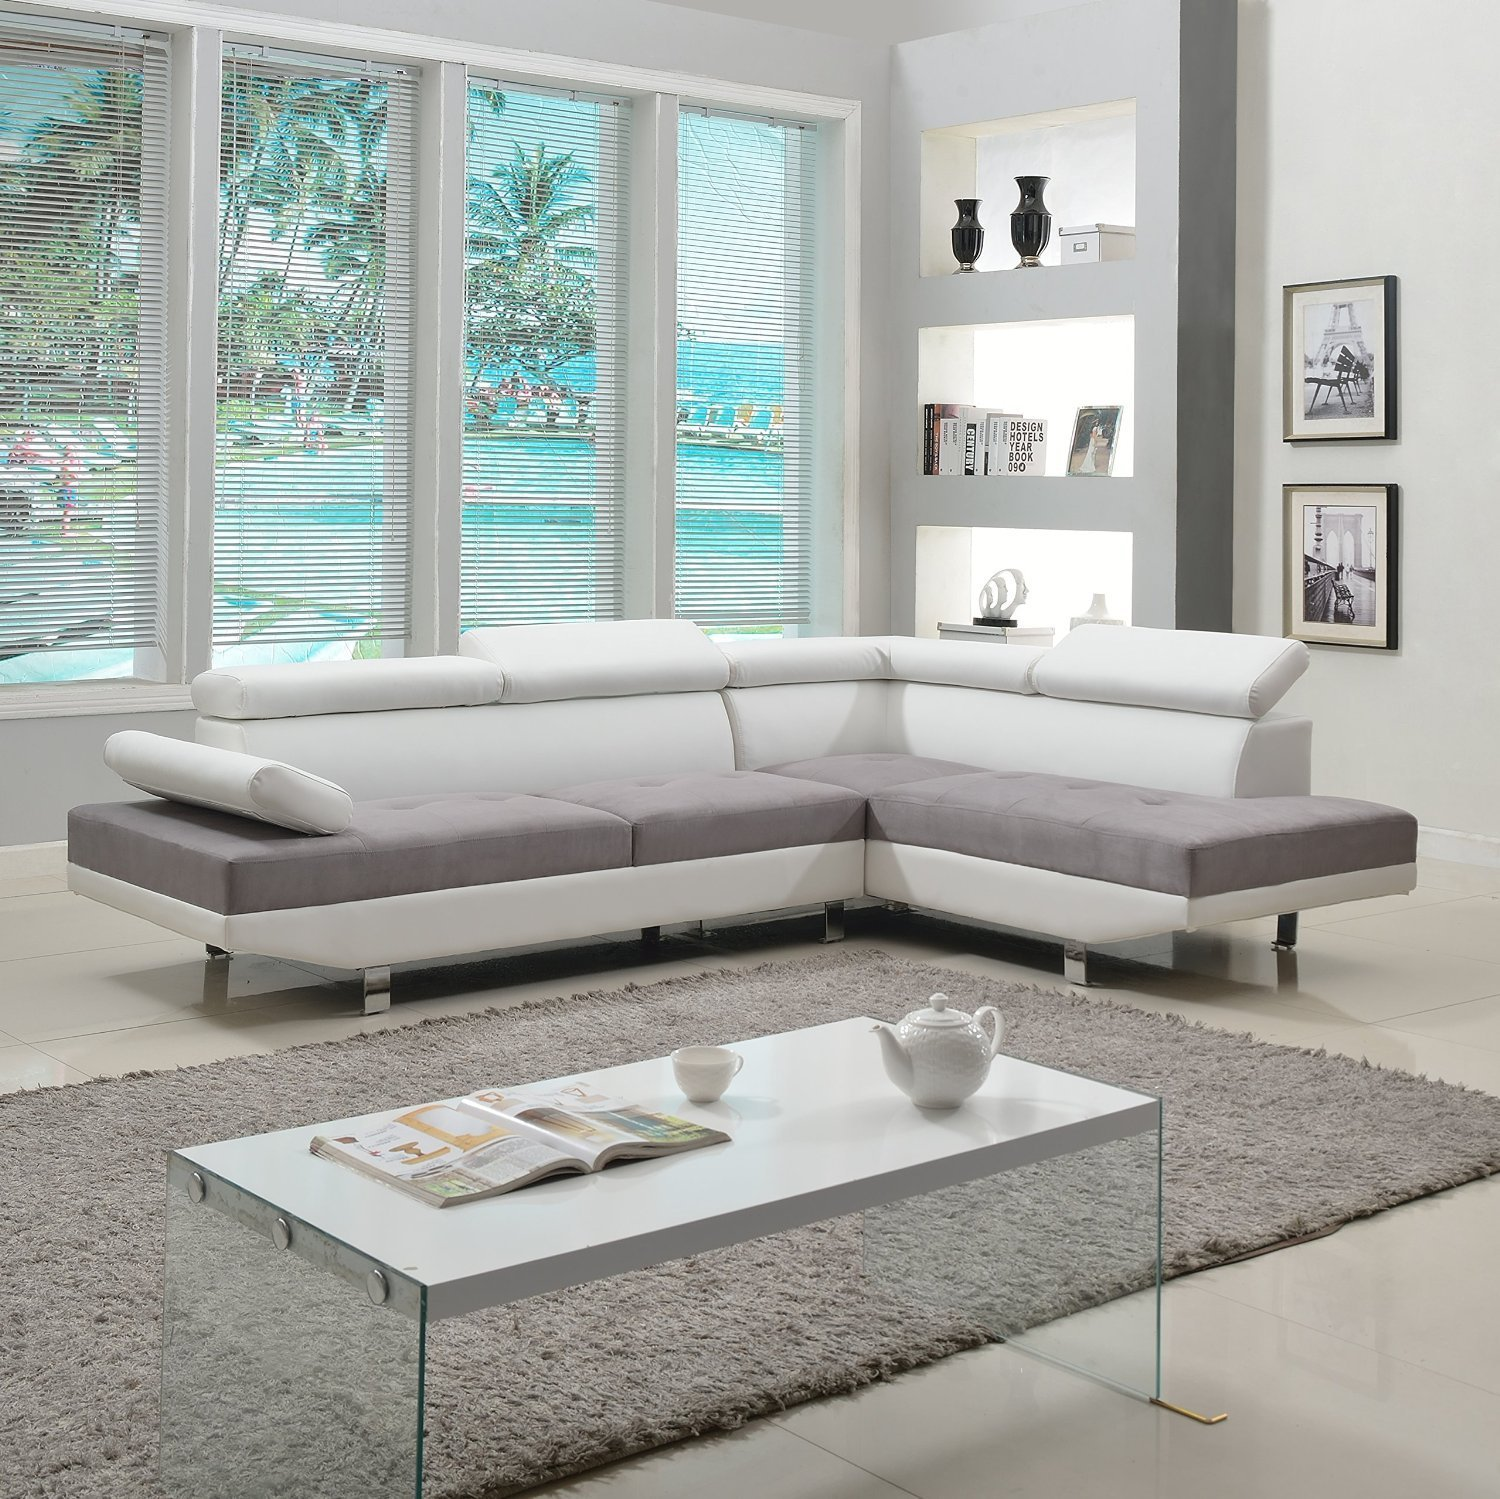 Modern living room furniture review find the best one for Contemporary furnishings